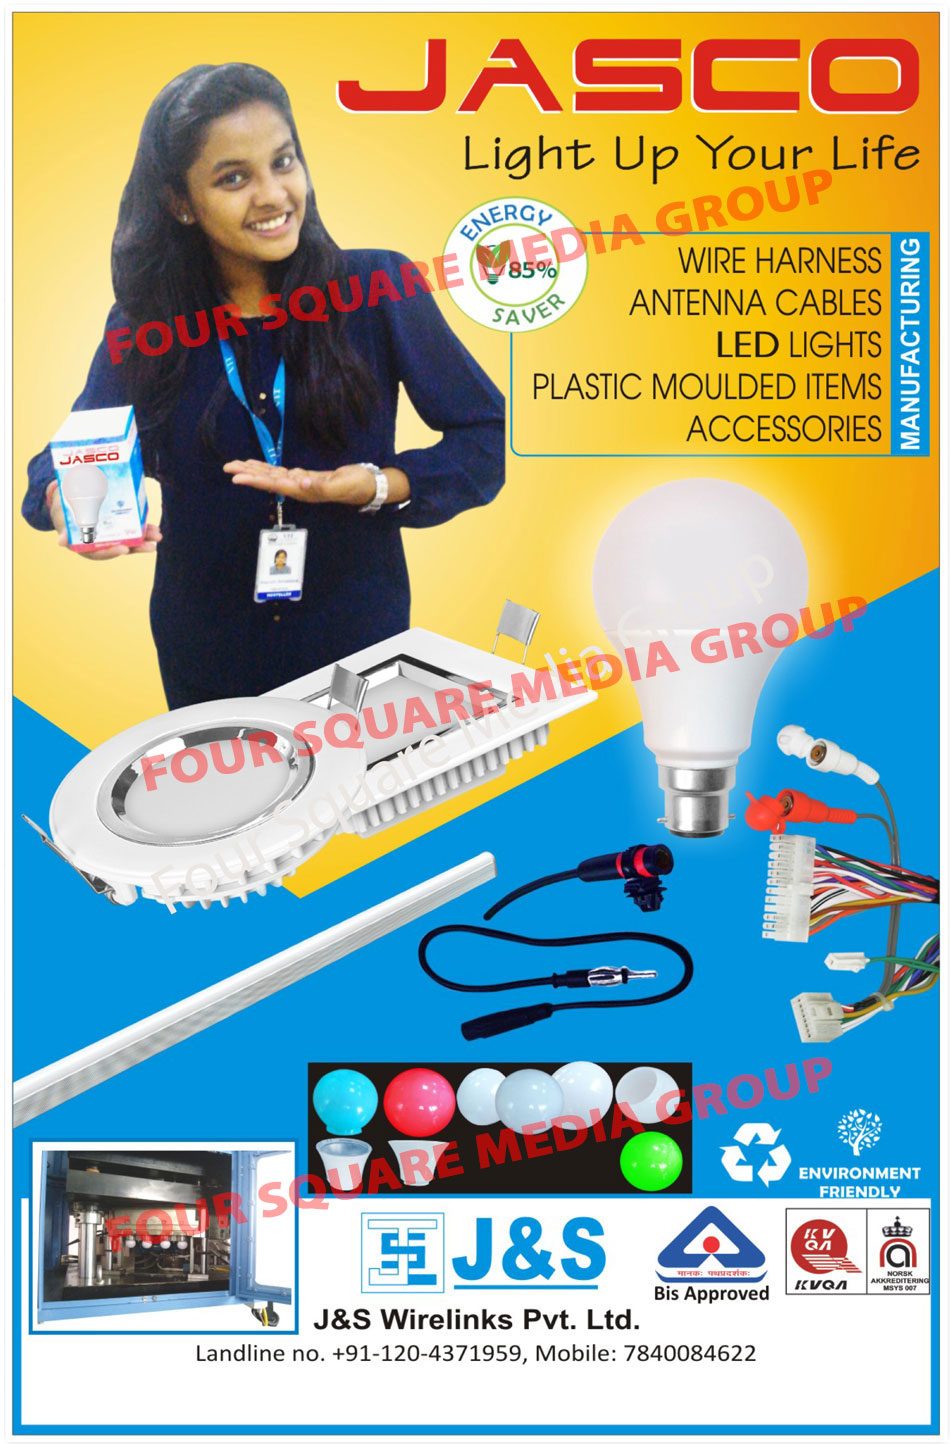 Wire Harnesses, Led Lights, Led Bulbs, Led Housings, Led Bulb Base, Antenna Cables, Plastic Moulded Items, Wire Harness Accessories, Lead Accessories, Led Light Housings, Led Bulb Housings